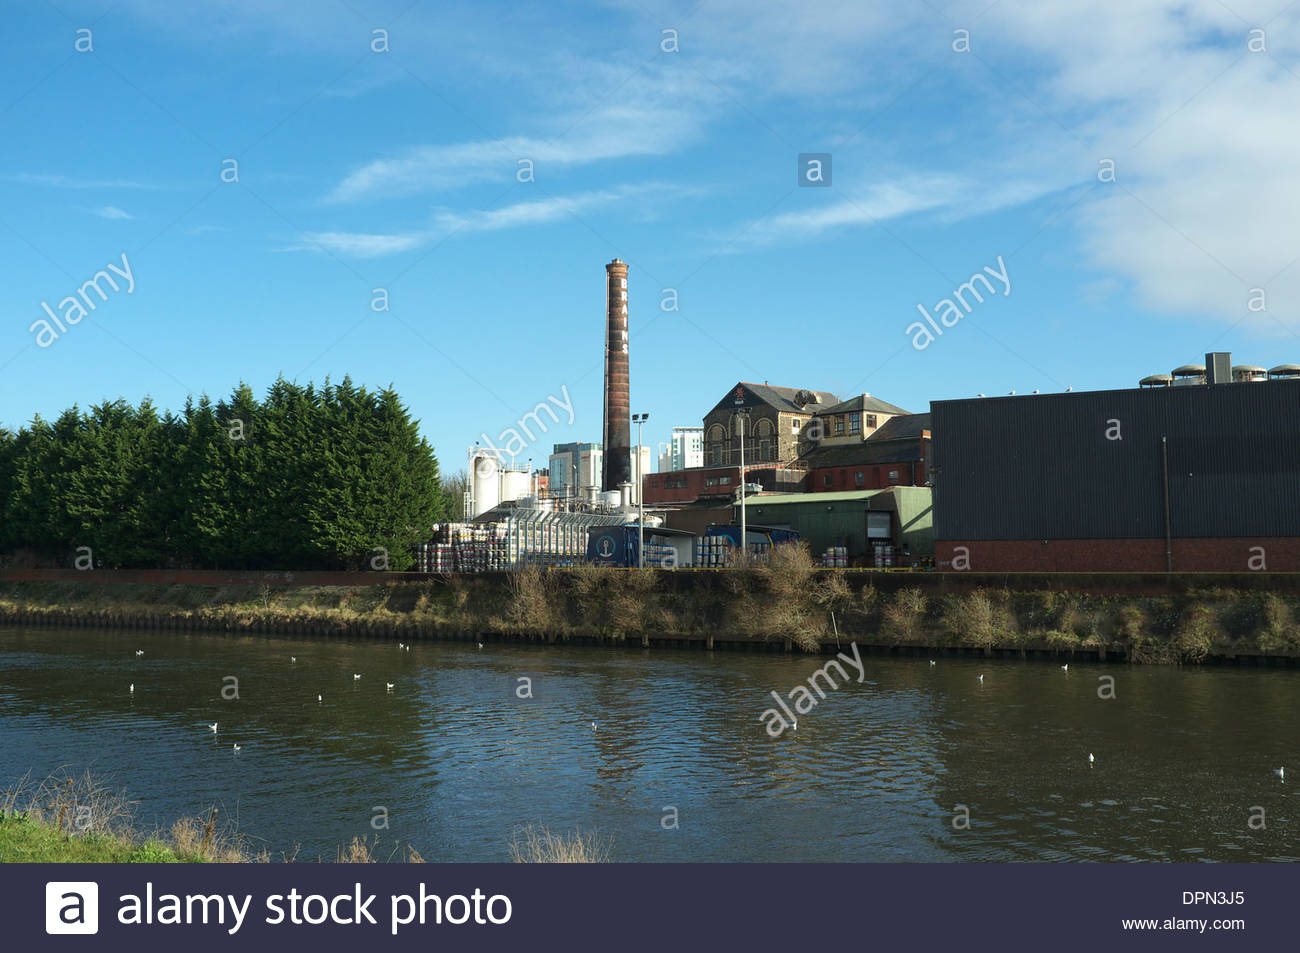 Brains, the factory premises of the Cardiff brewery, with the River Taff visible in the foreground. Cardiff, Wales, UK. - Stock Image